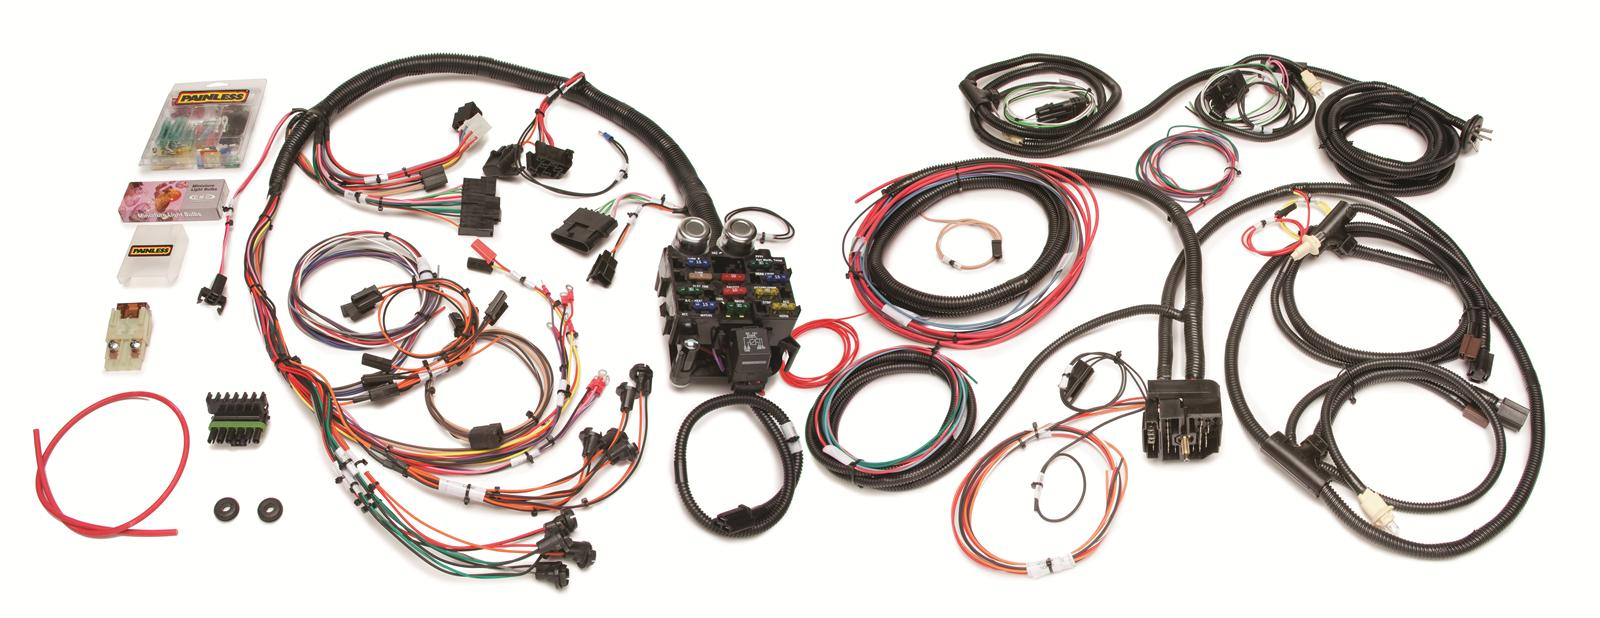 painless performance 21 circuit direct fit jeep cj harnesses 10110 free shipping on orders